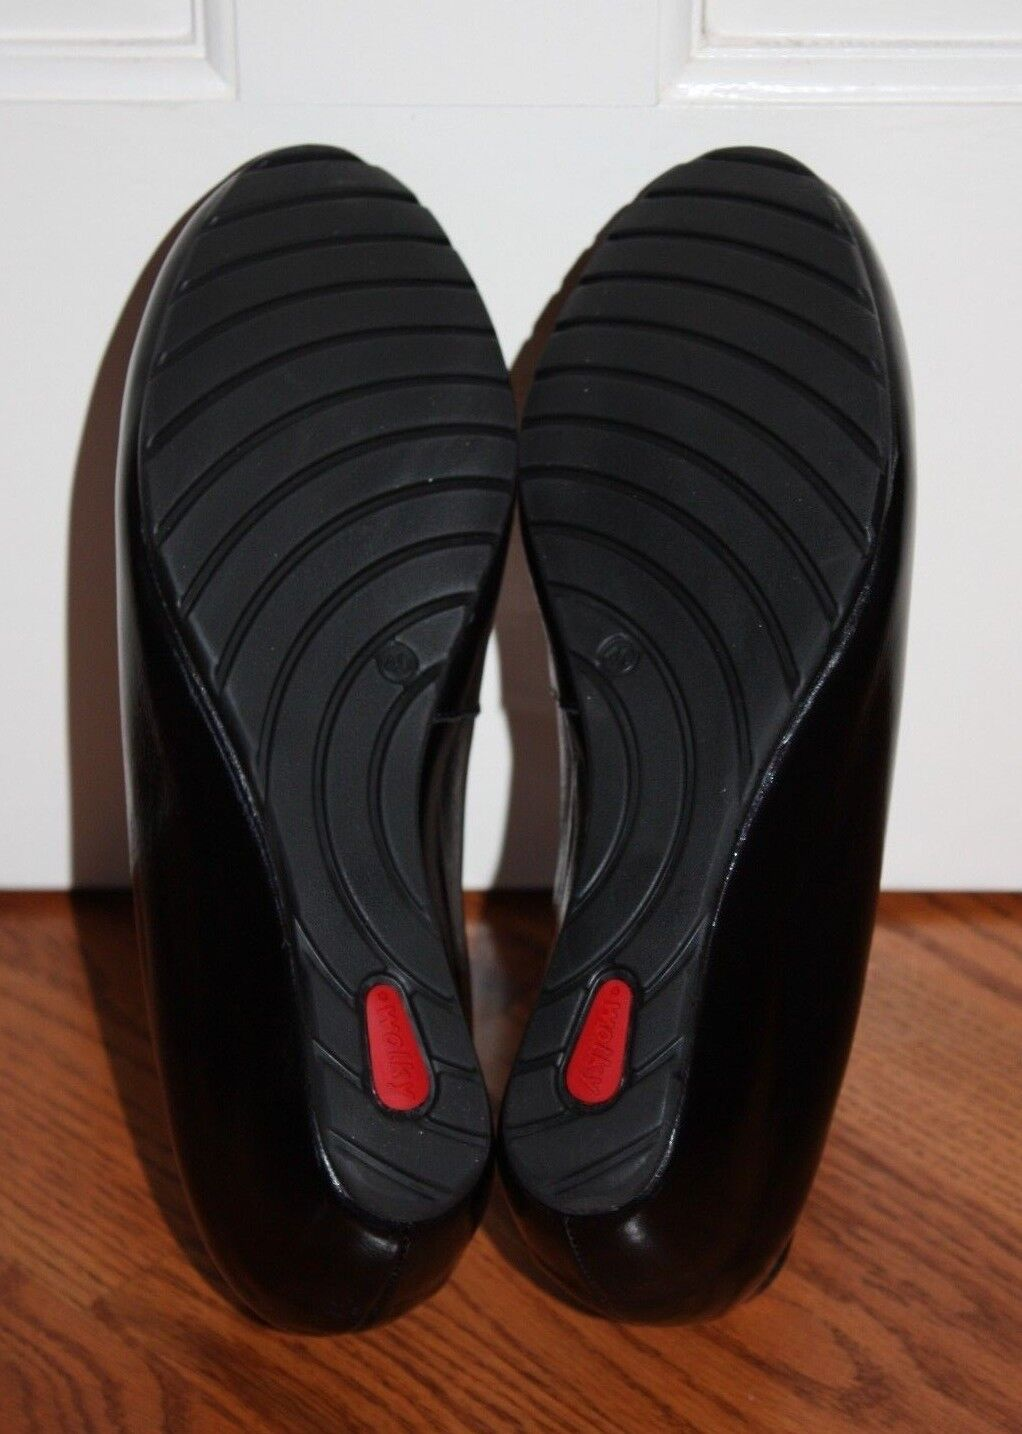 NEW Womens  299 Wolky Valentine Black Midland Patent Leather Leather Leather Wedges shoes Sz 40 c44c86